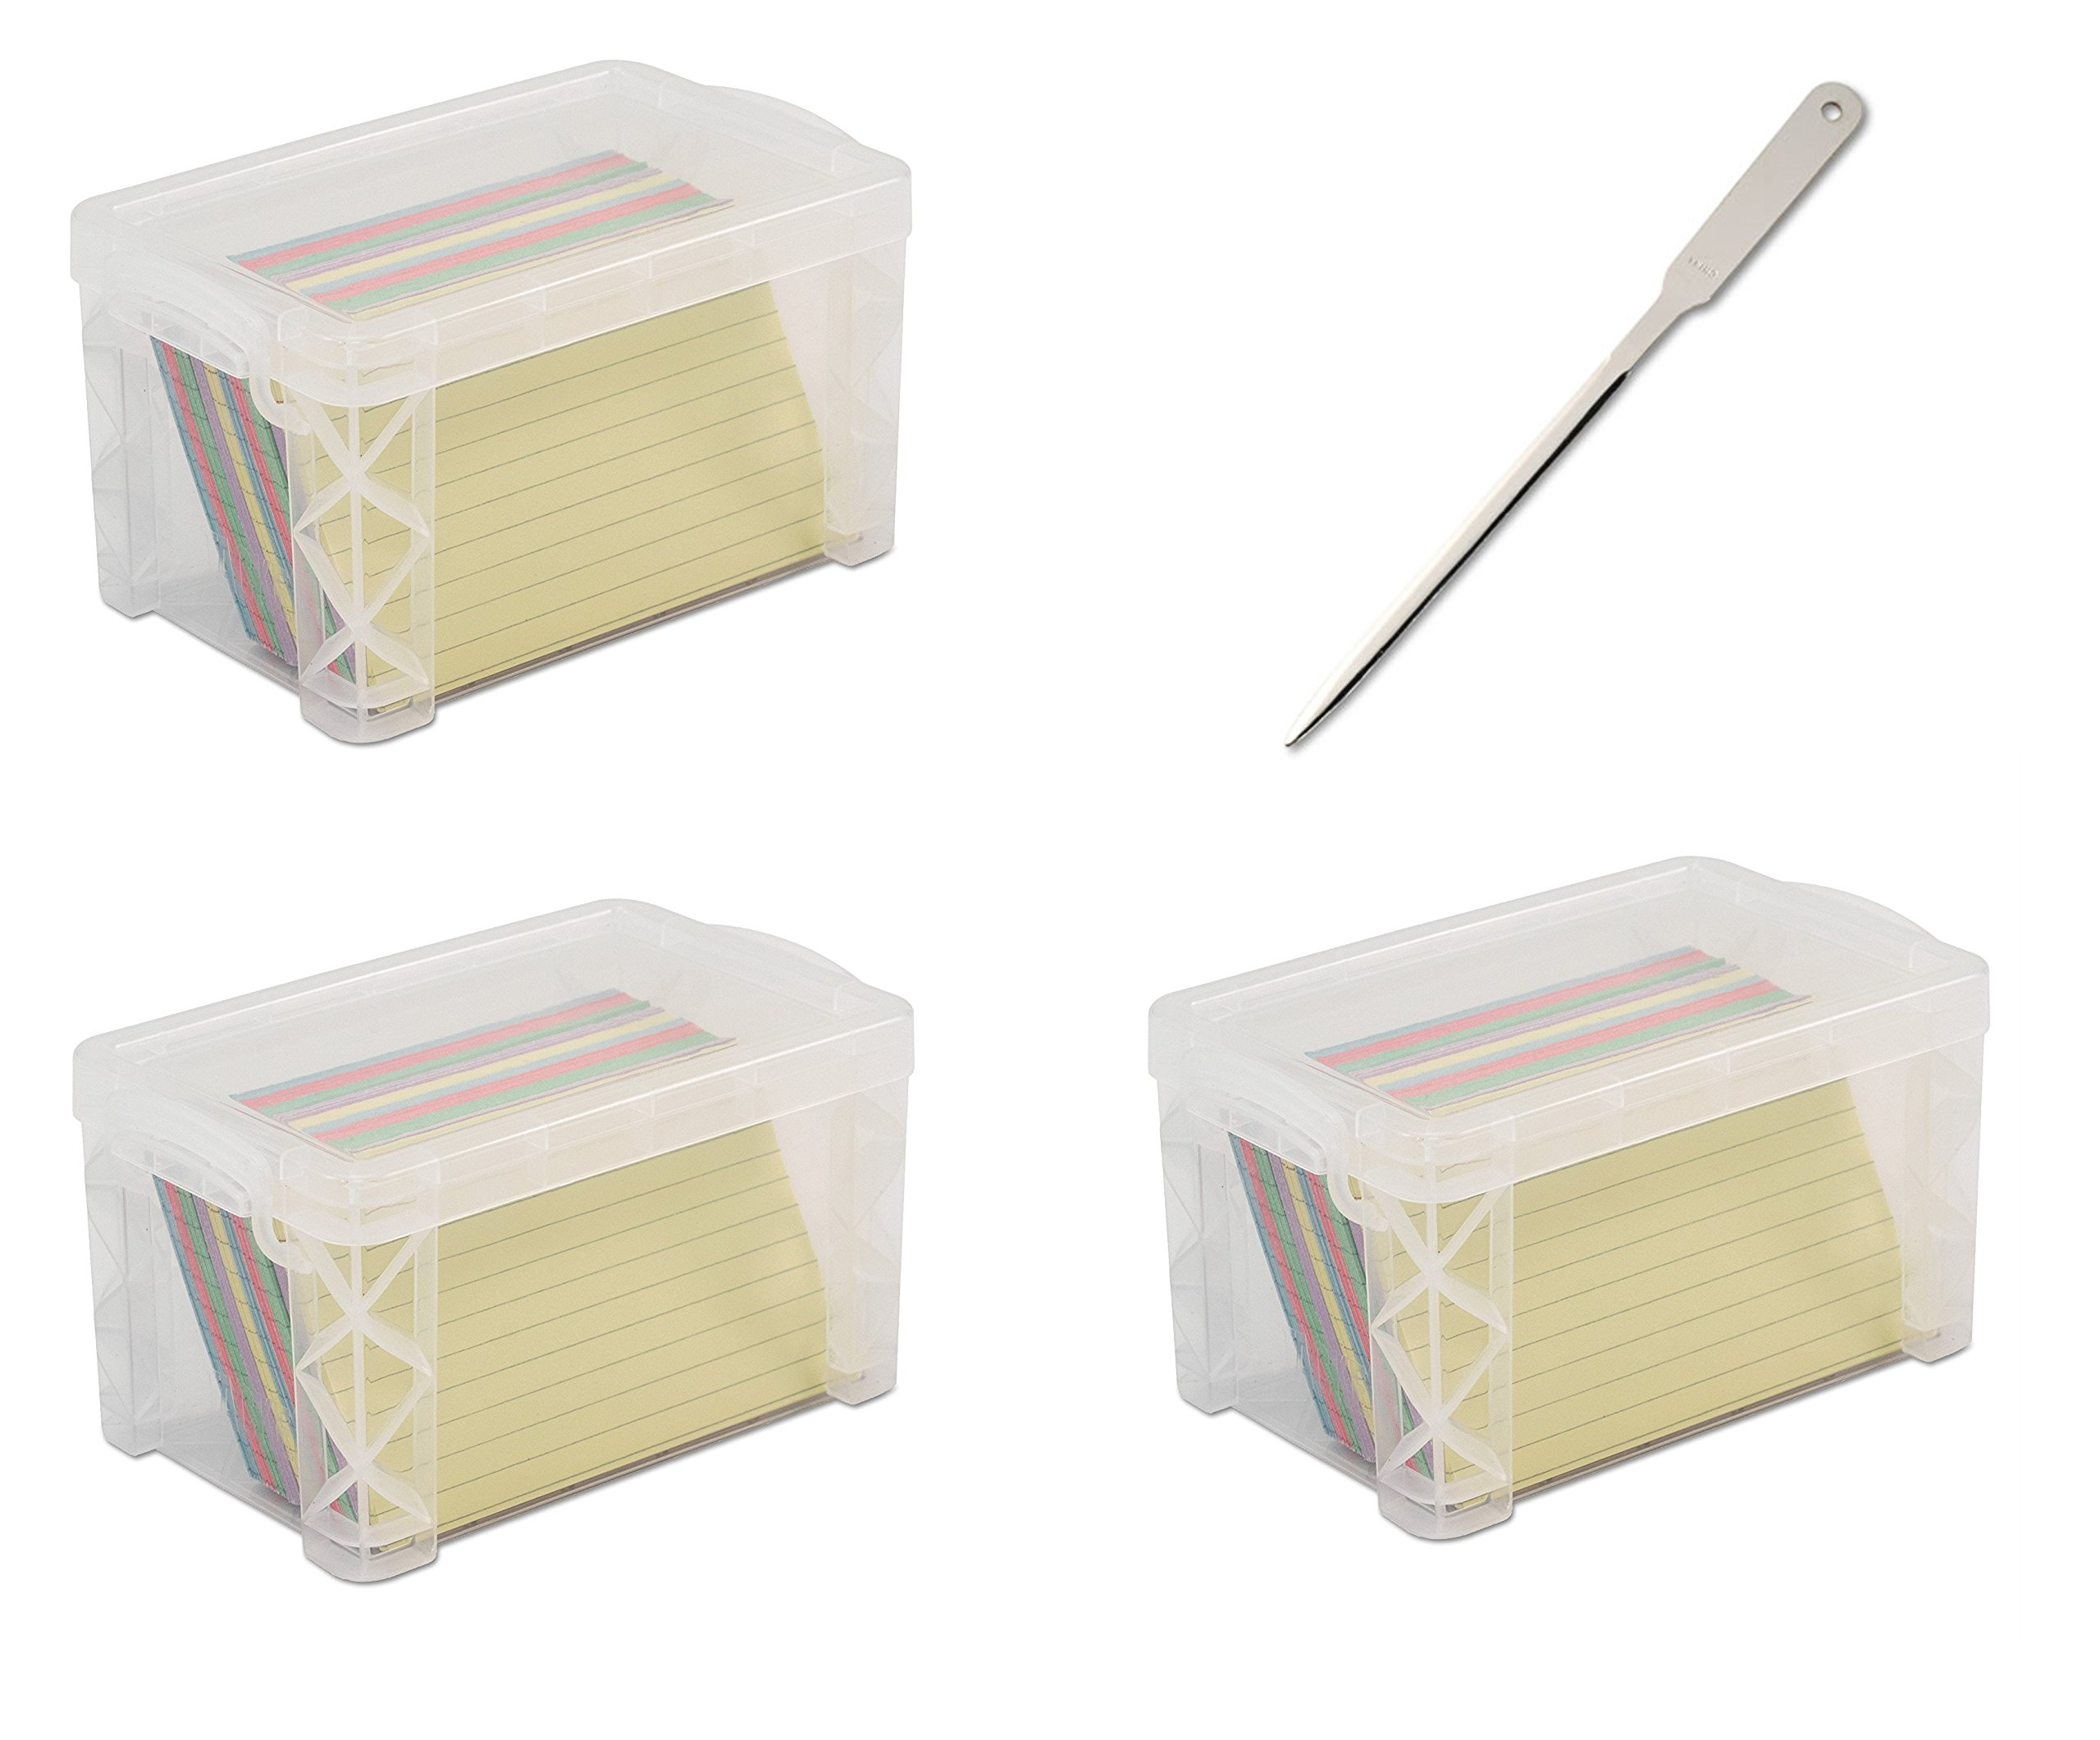 Advantus 40307 Super Stacker 3'' x 5'' Index Card Box, Clear, 3 Boxes (40307) - Bundle Includes Universal Letter Opener